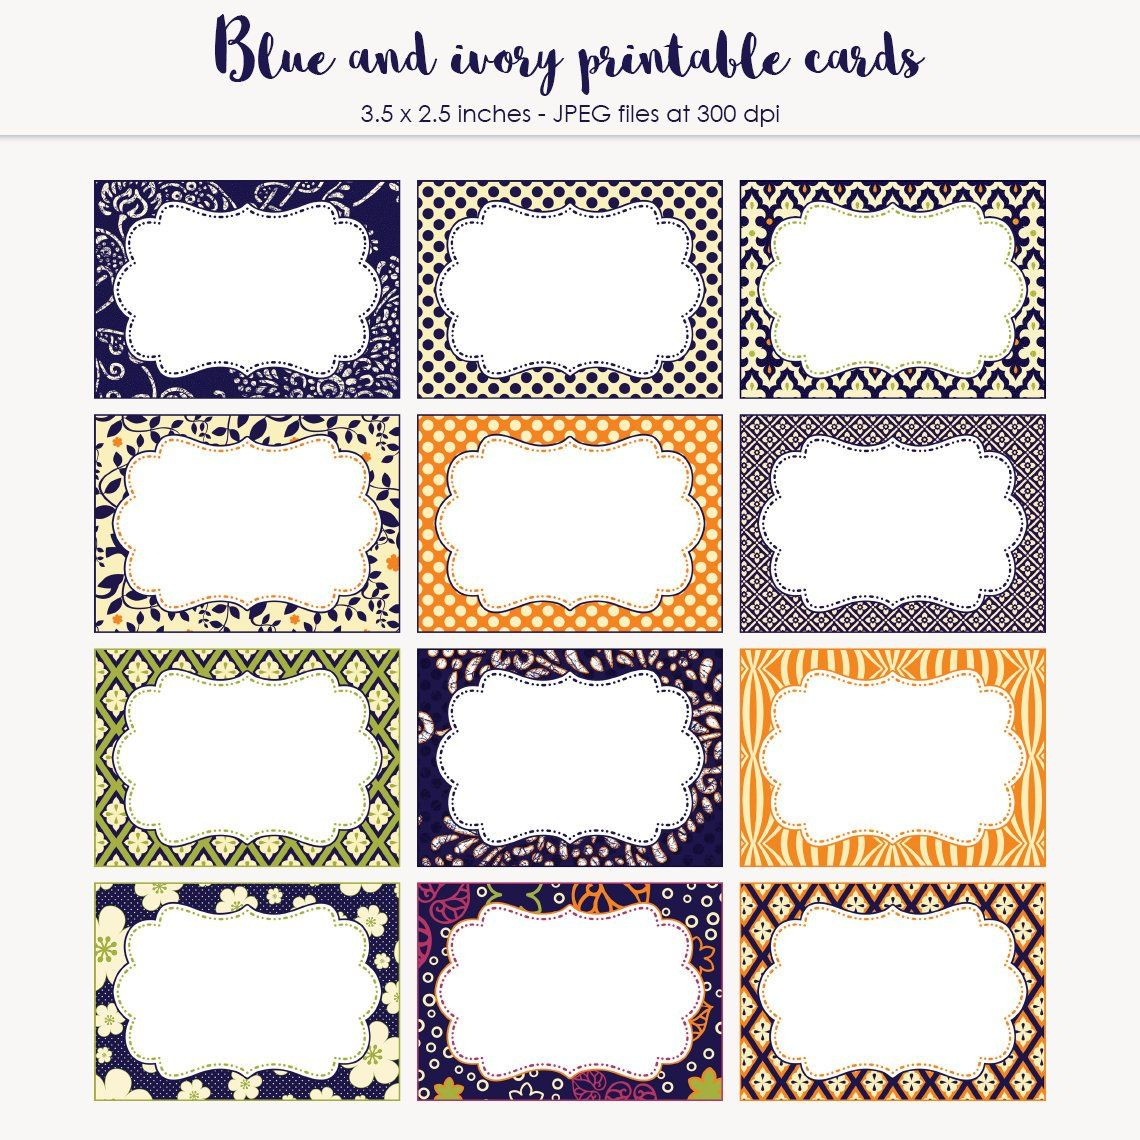 Candy Buffet Label Place Cards 3 5 X 2 5 Cards Printable Etsy Printable Cards Etsy Printables Candy Buffet Labels